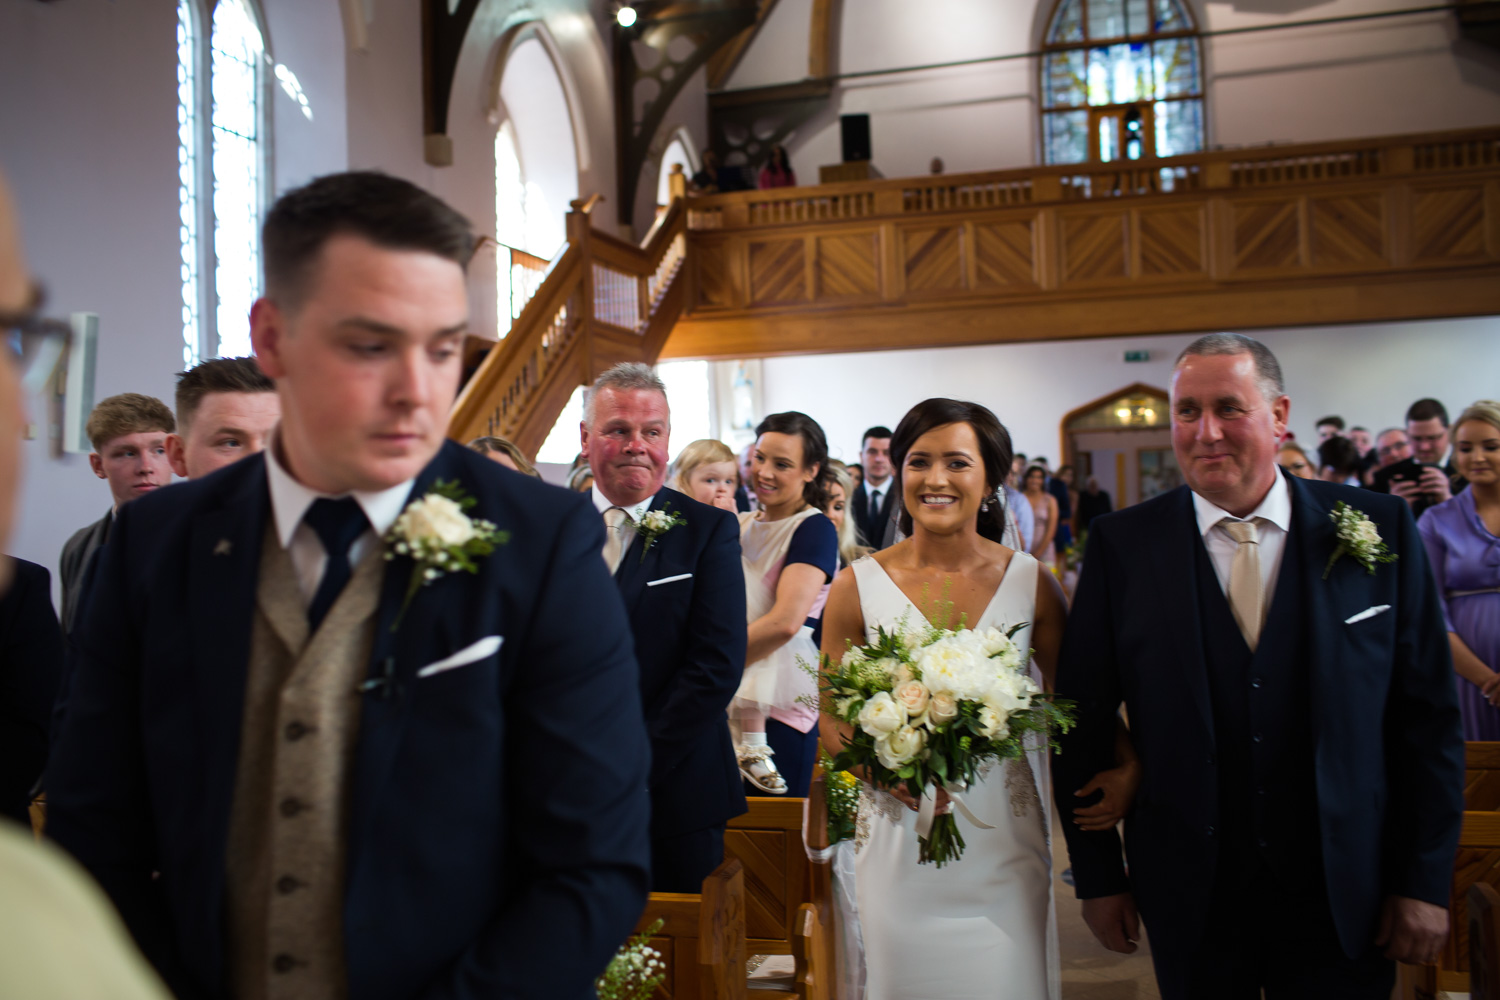 Mark_Barnes_Northern_Ireland_wedding_photographer_redcastle_hotel_Donegal_Wedding_photography_Donegal_wedding_photographer-16.jpg